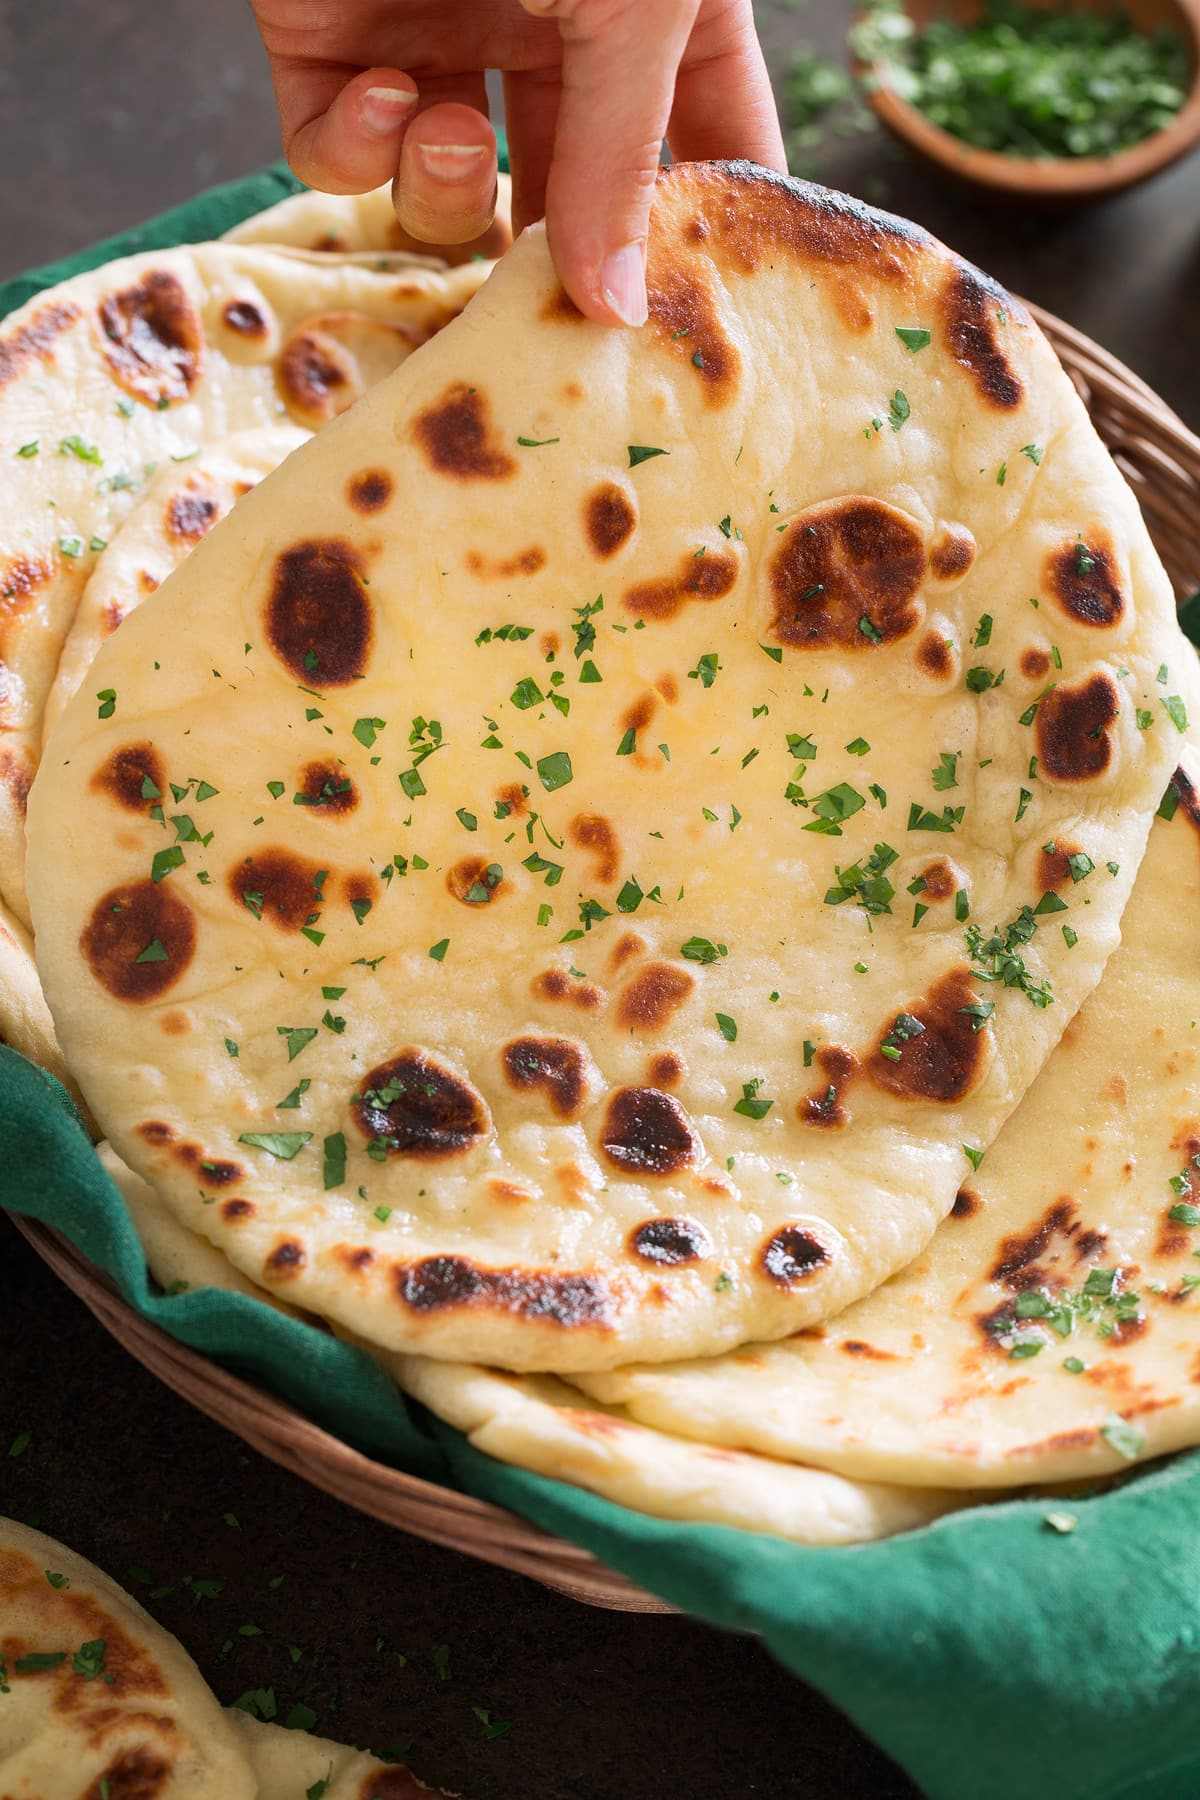 Photo of hand lifting soft naan bread from basket.